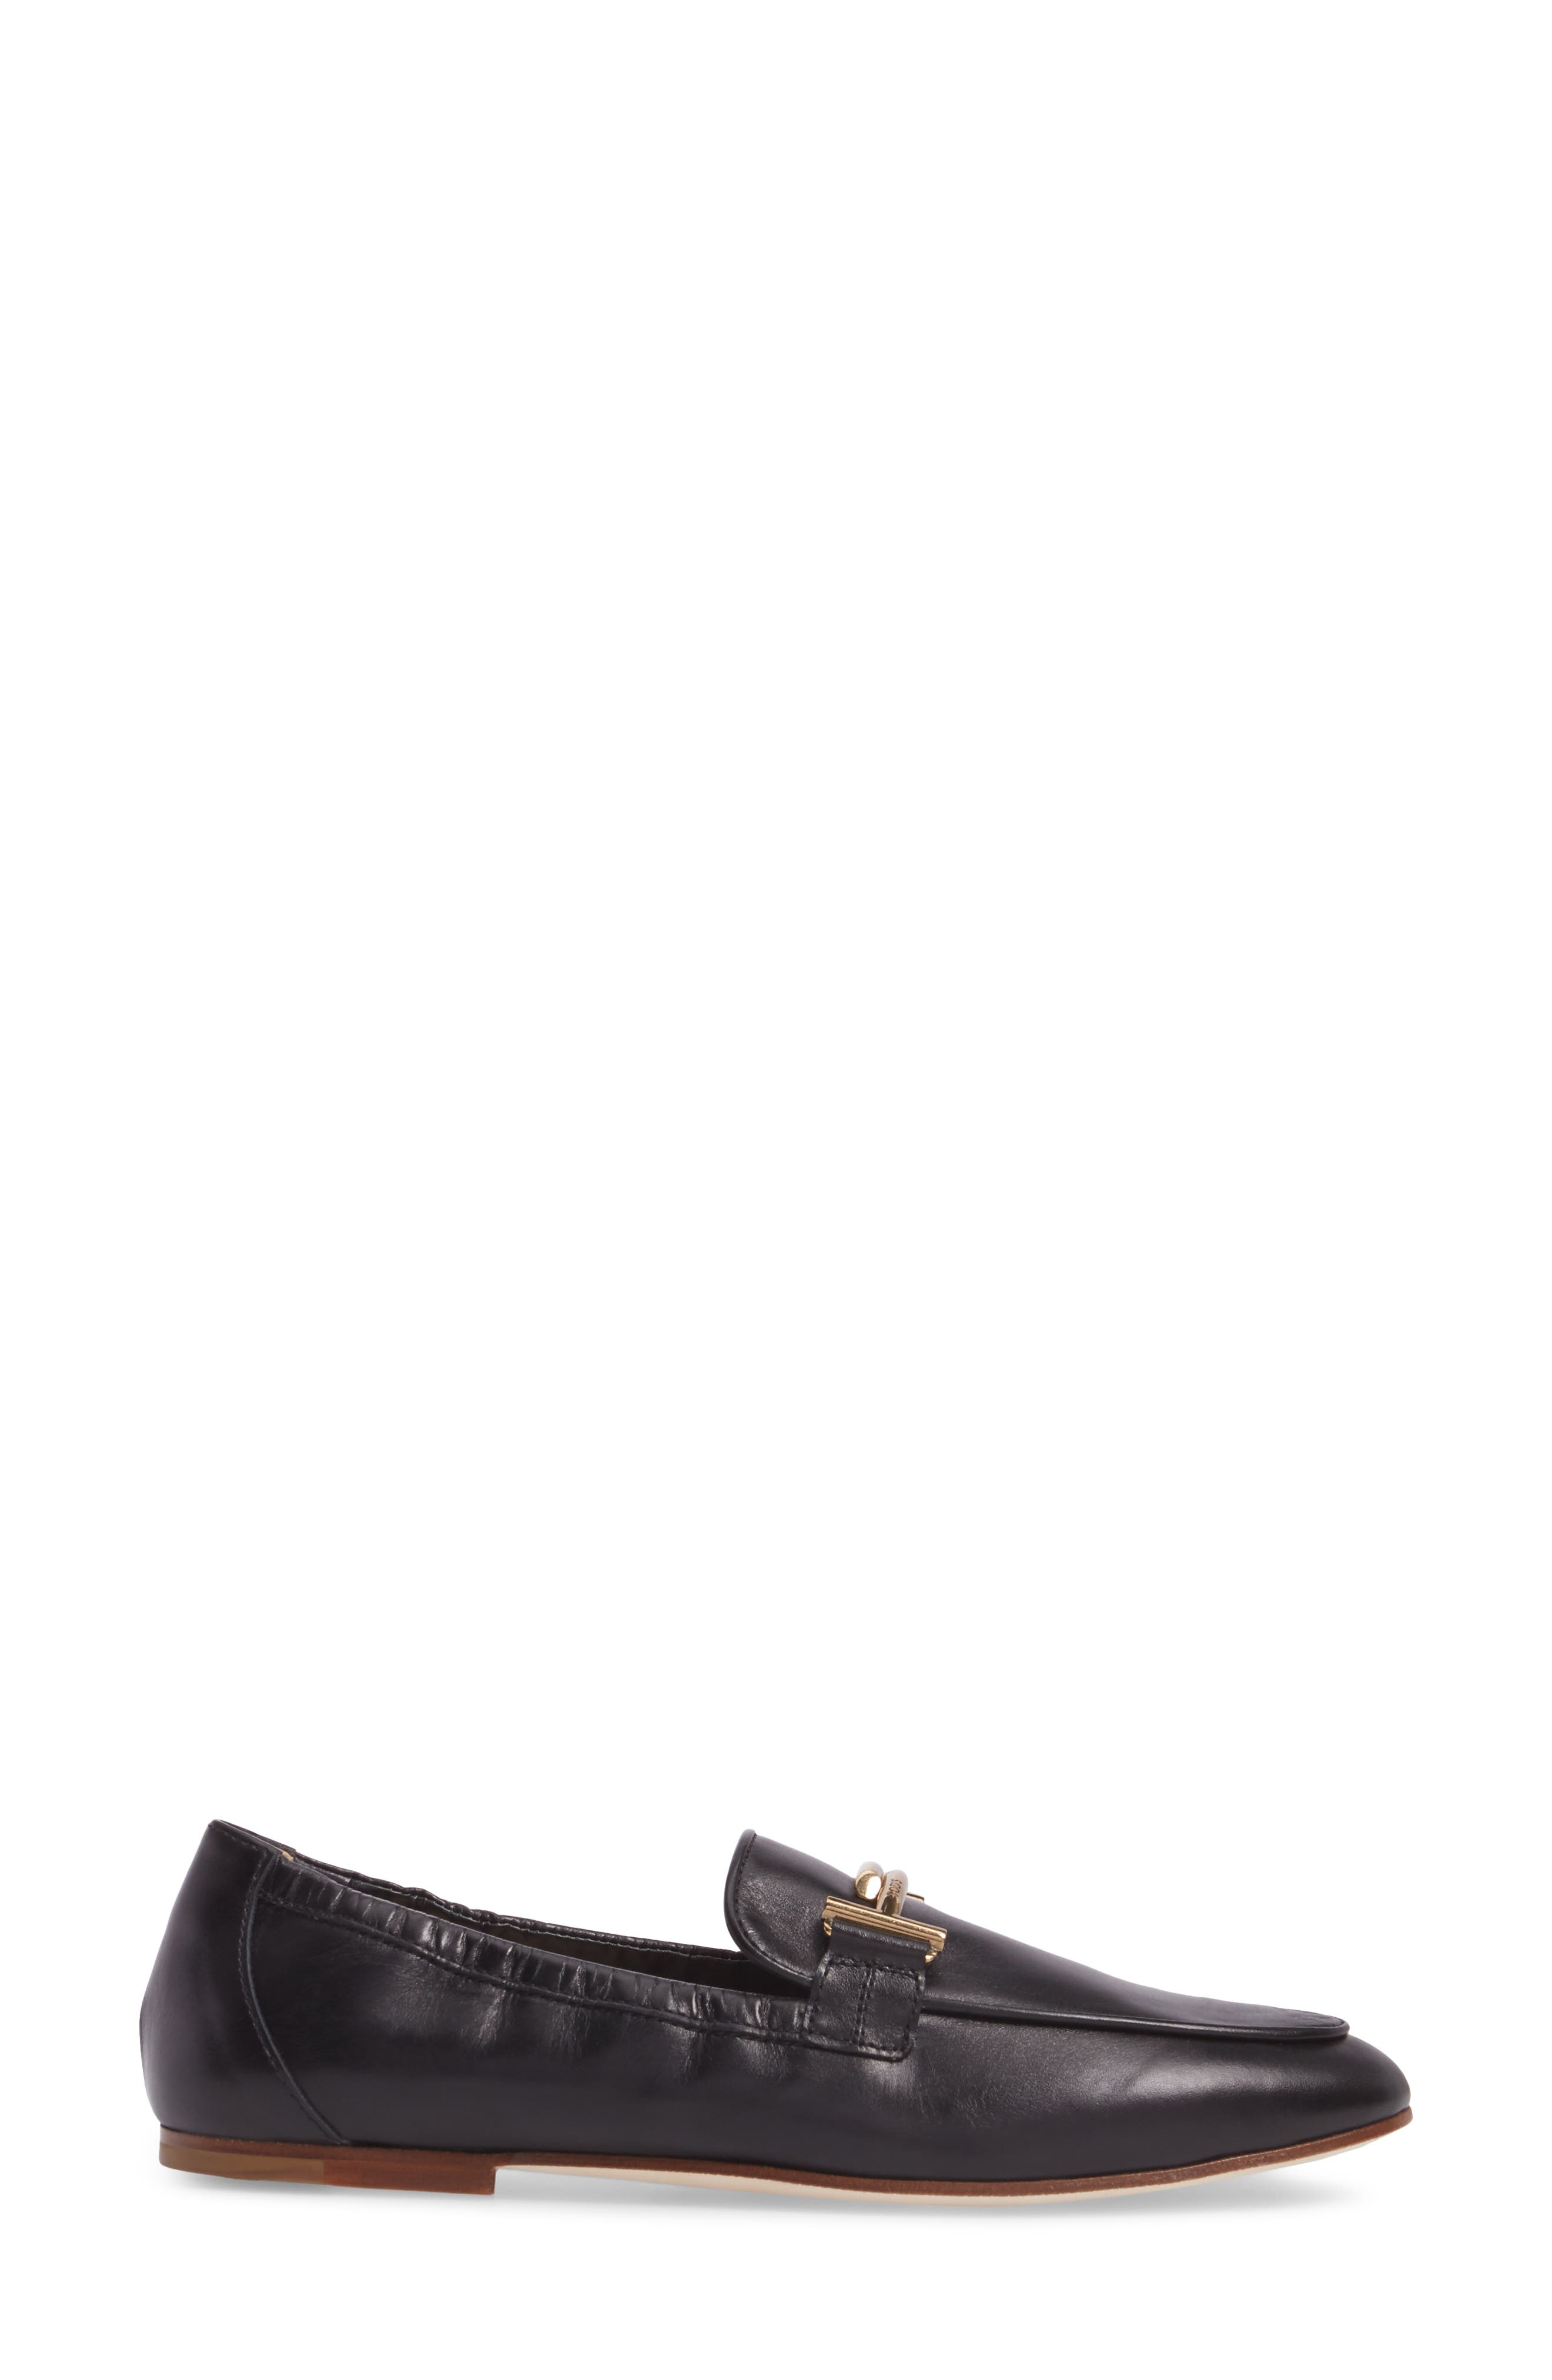 Double T Scrunch Loafer,                             Alternate thumbnail 3, color,                             Black